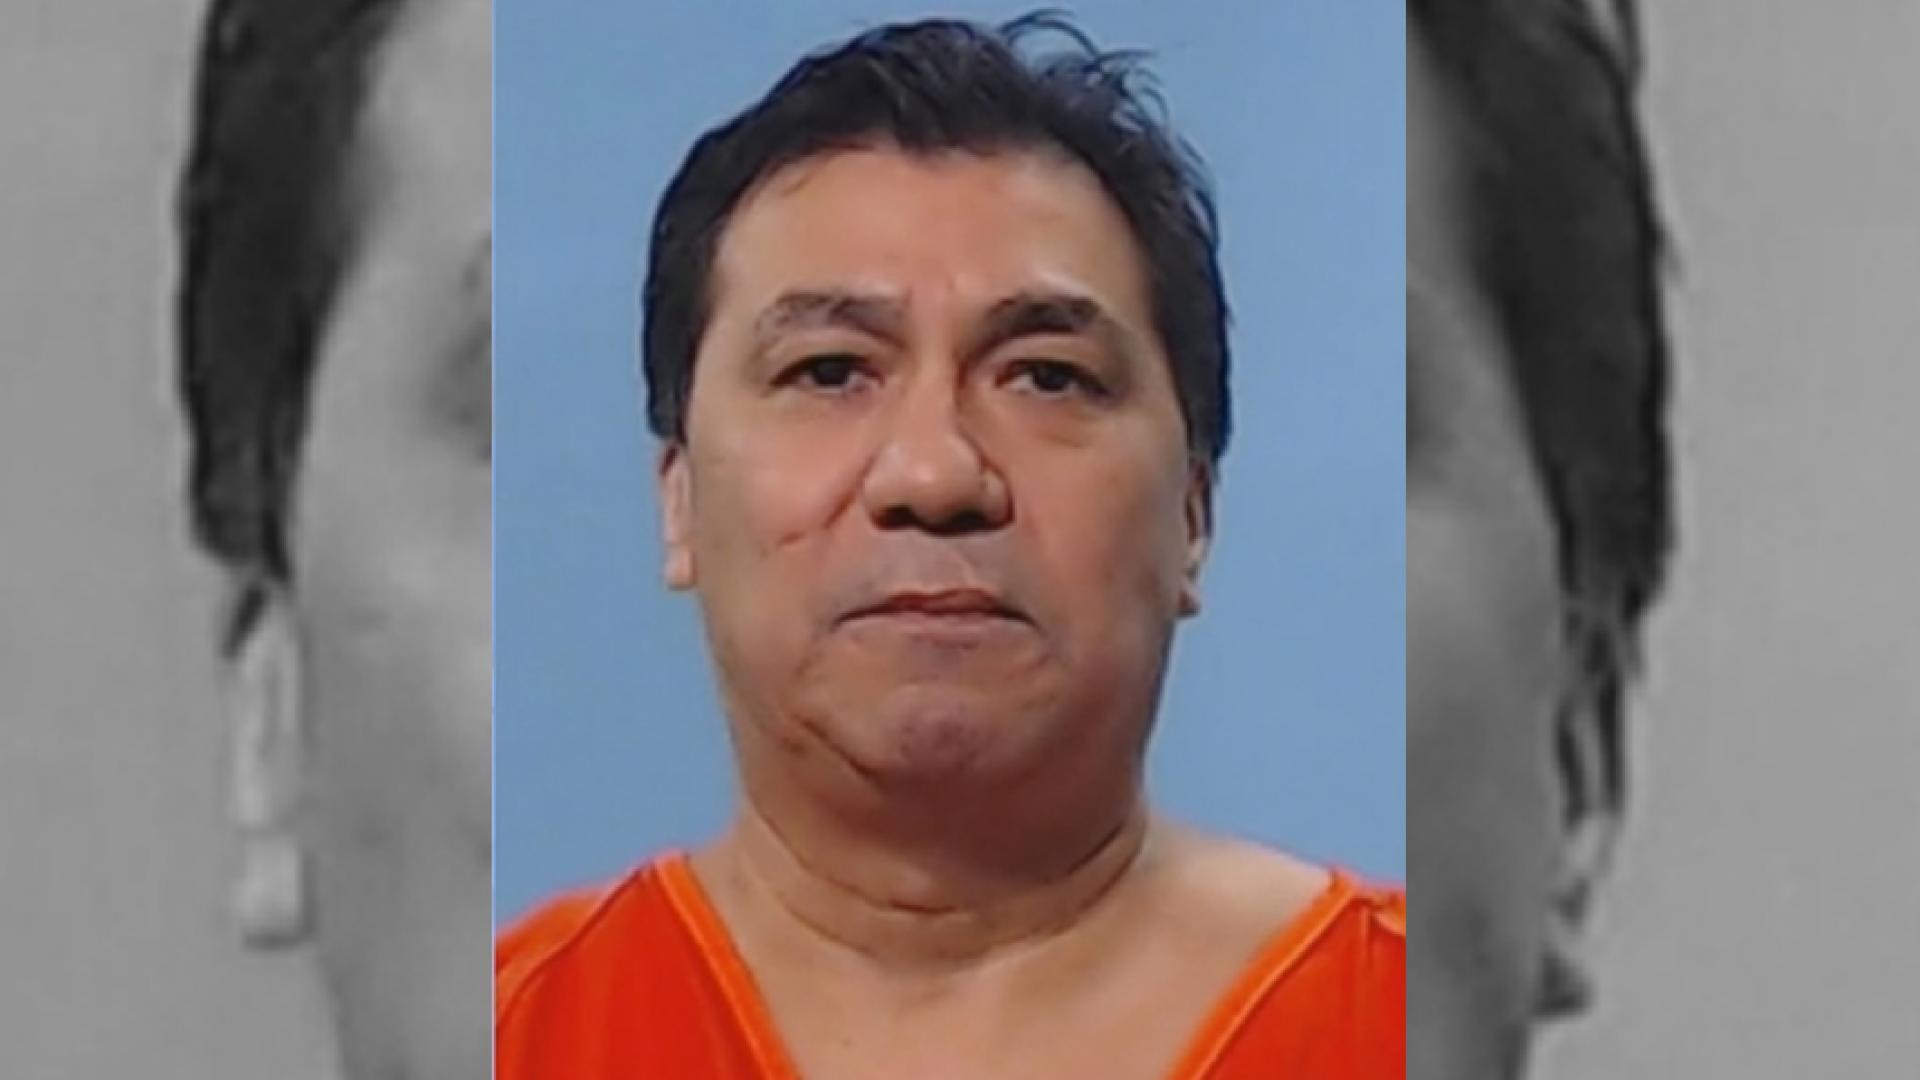 Houston police sergeant charged with murdering his wife